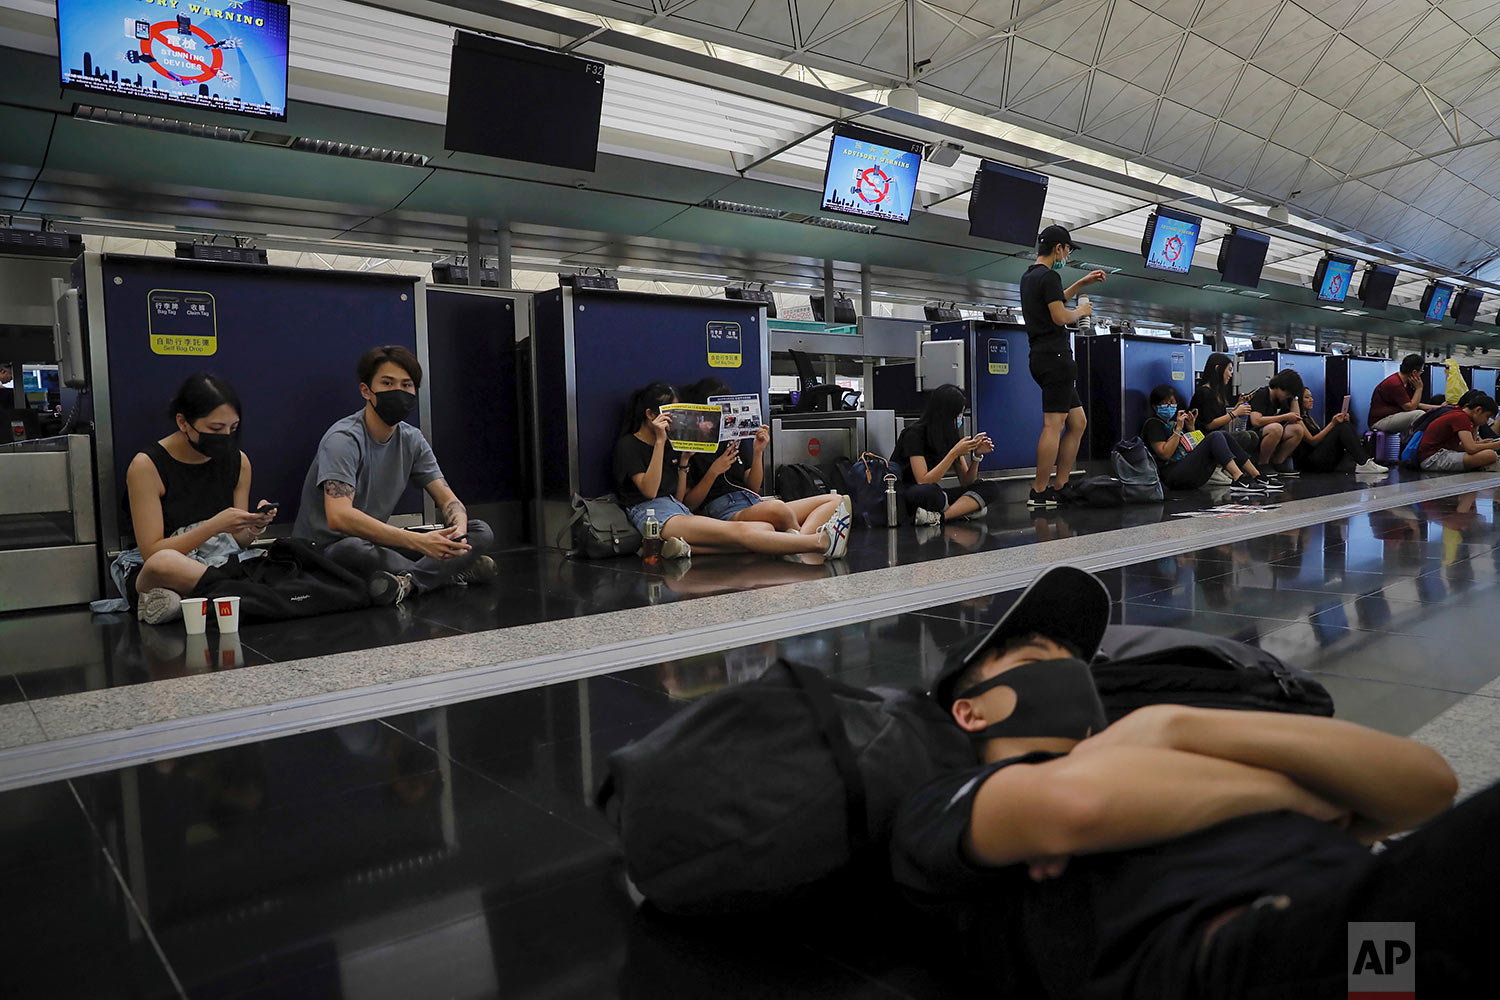 Protesters gather at the closed check-in counters at the Hong Kong International Airport, Aug. 12, 2019. (AP Photo/Kin Cheung)